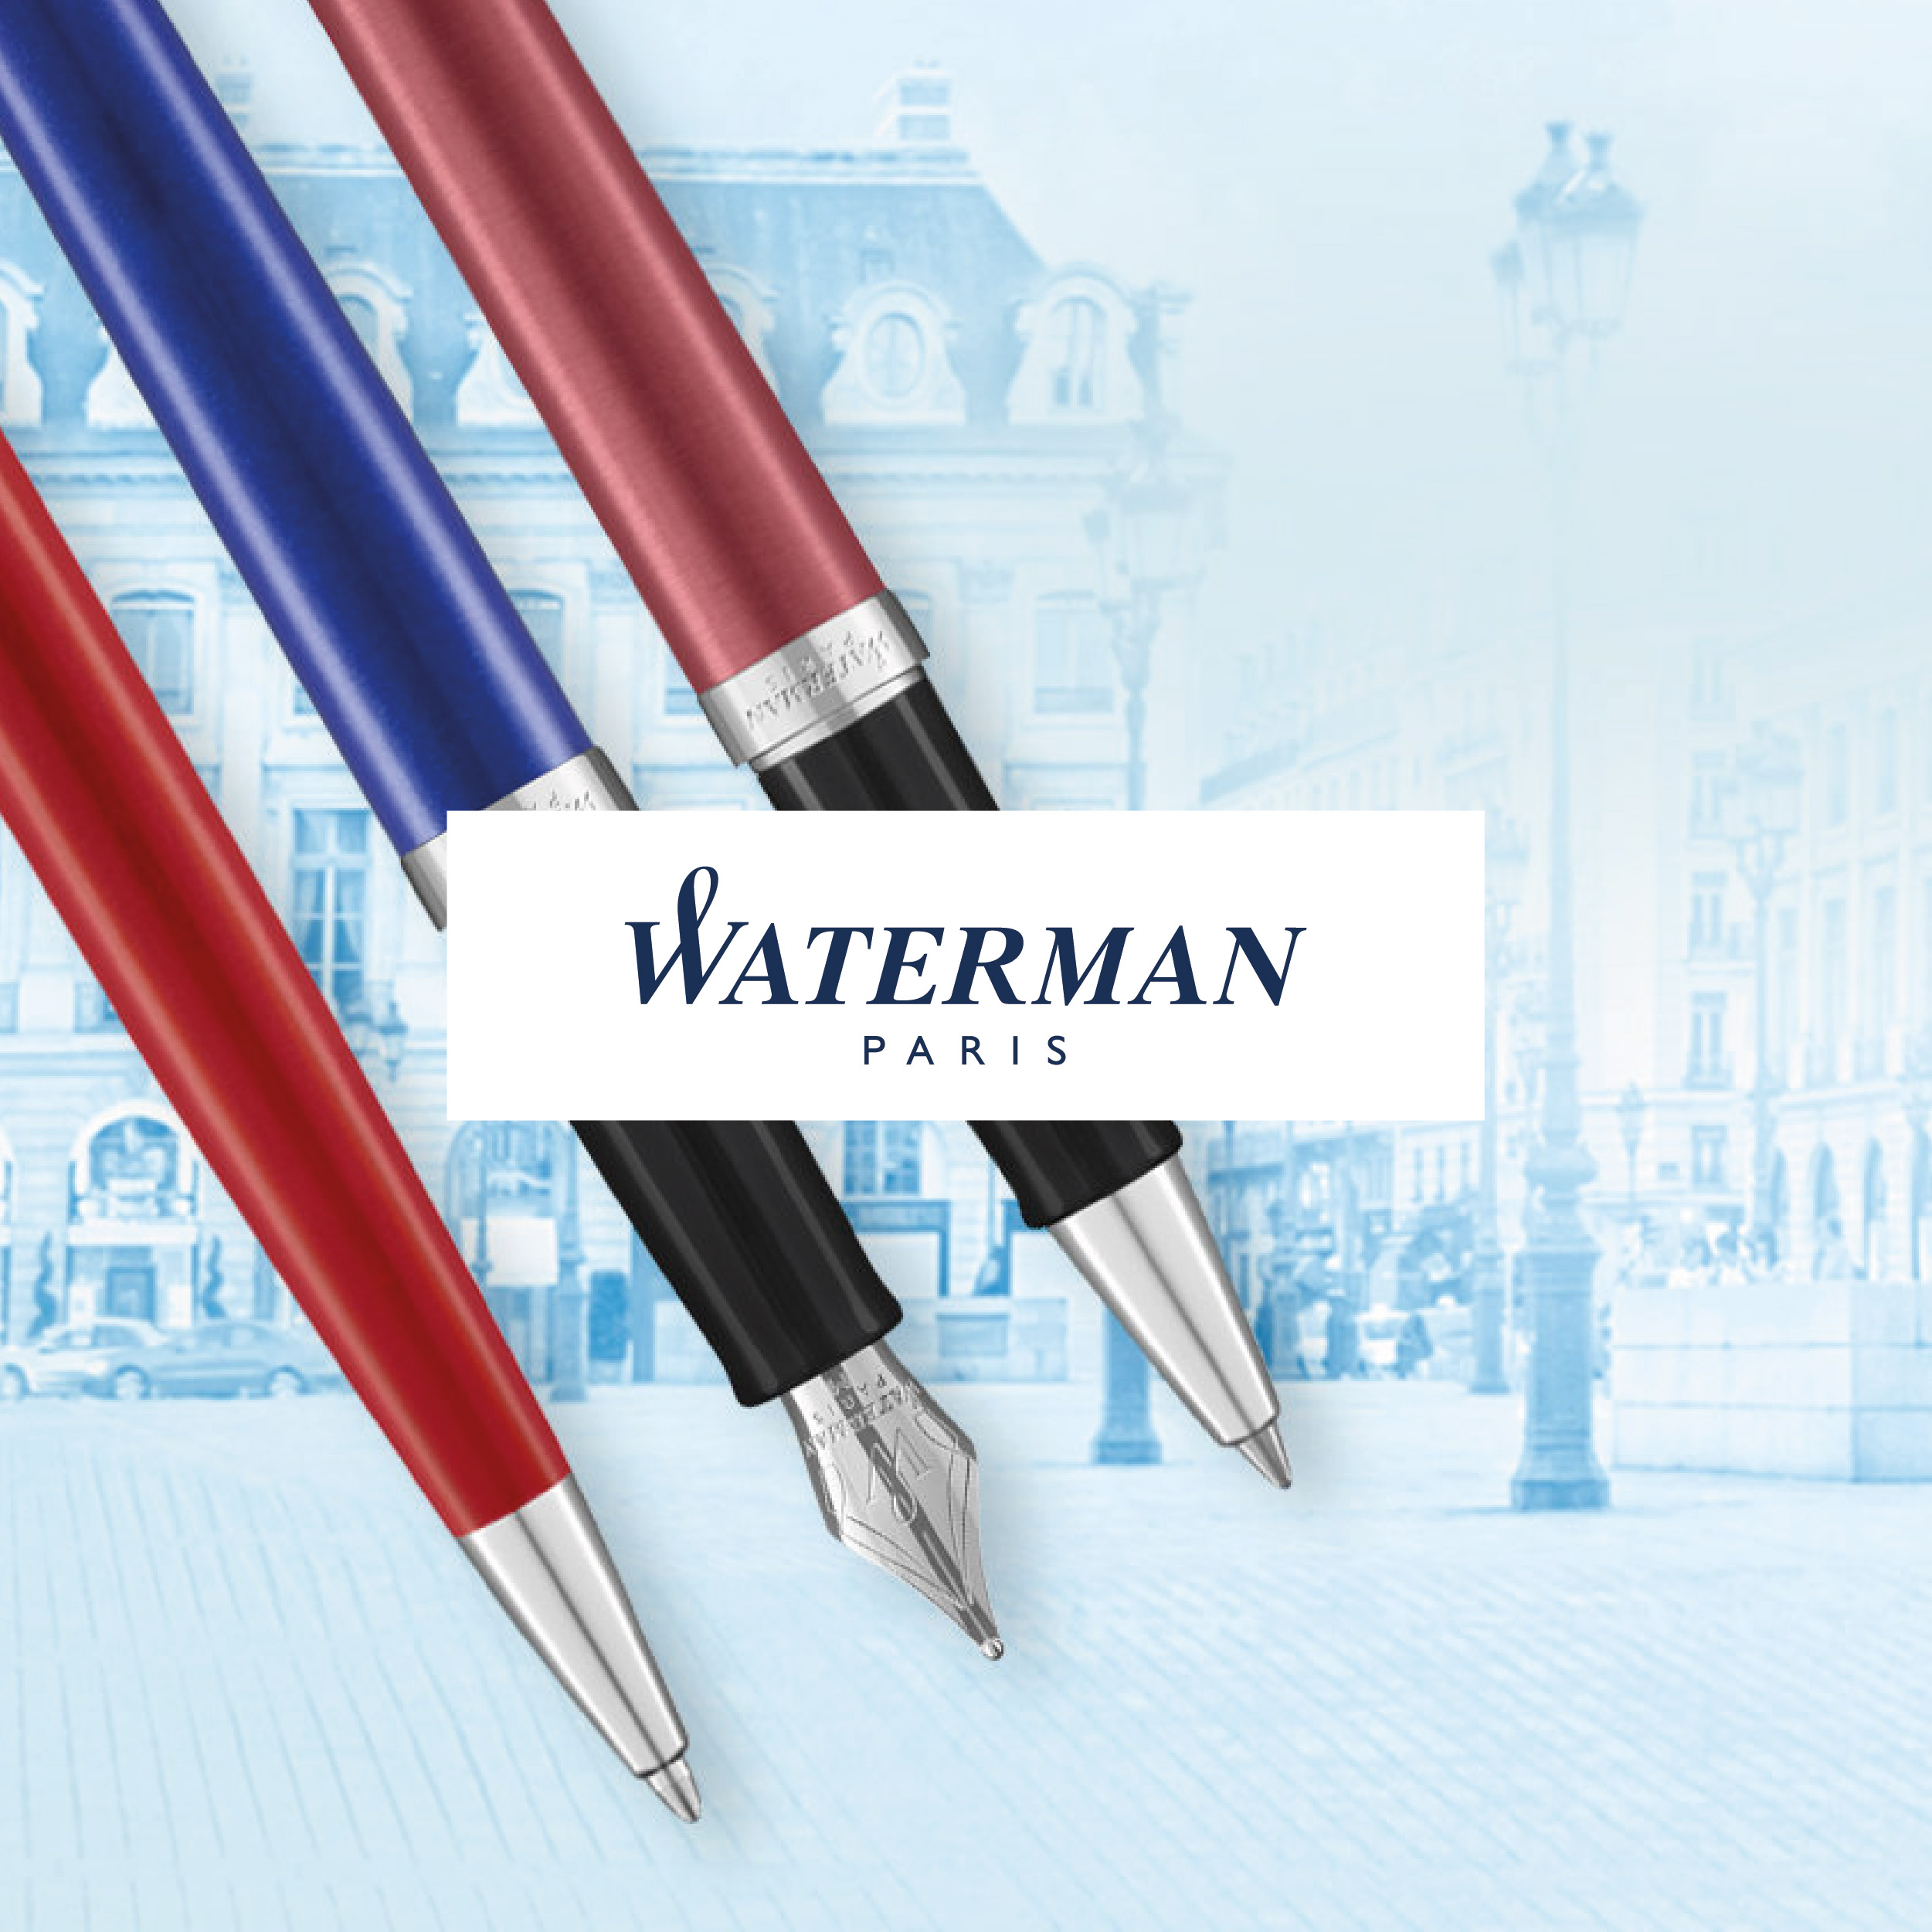 PromoBrand_Waterman_Pens_Promotional_Merchandise_Brands_Bounce_Creative_Designs